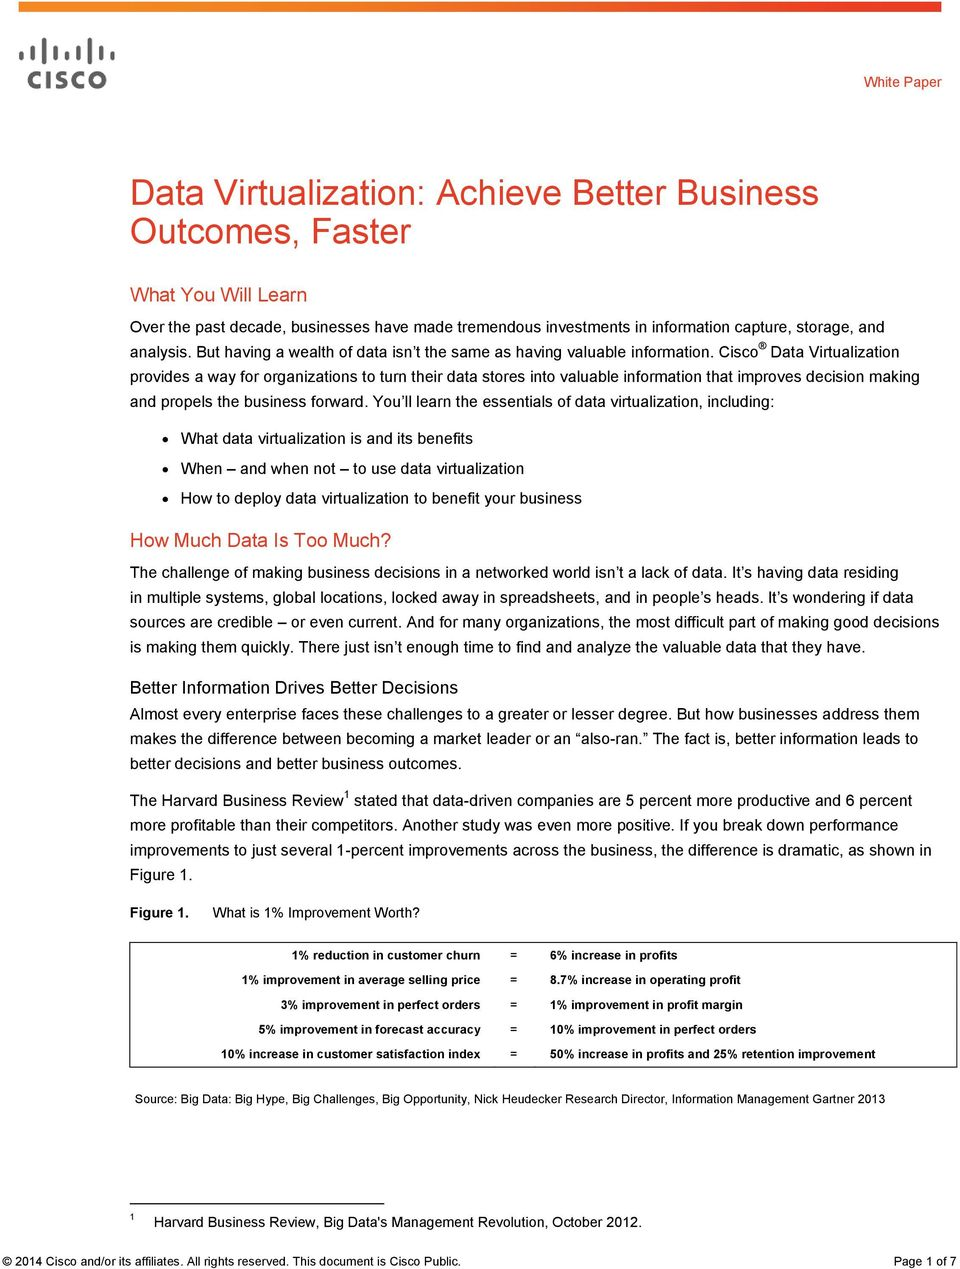 Cisco Data Virtualization provides a way for organizations to turn their data stores into valuable information that improves decision making and propels the business forward.